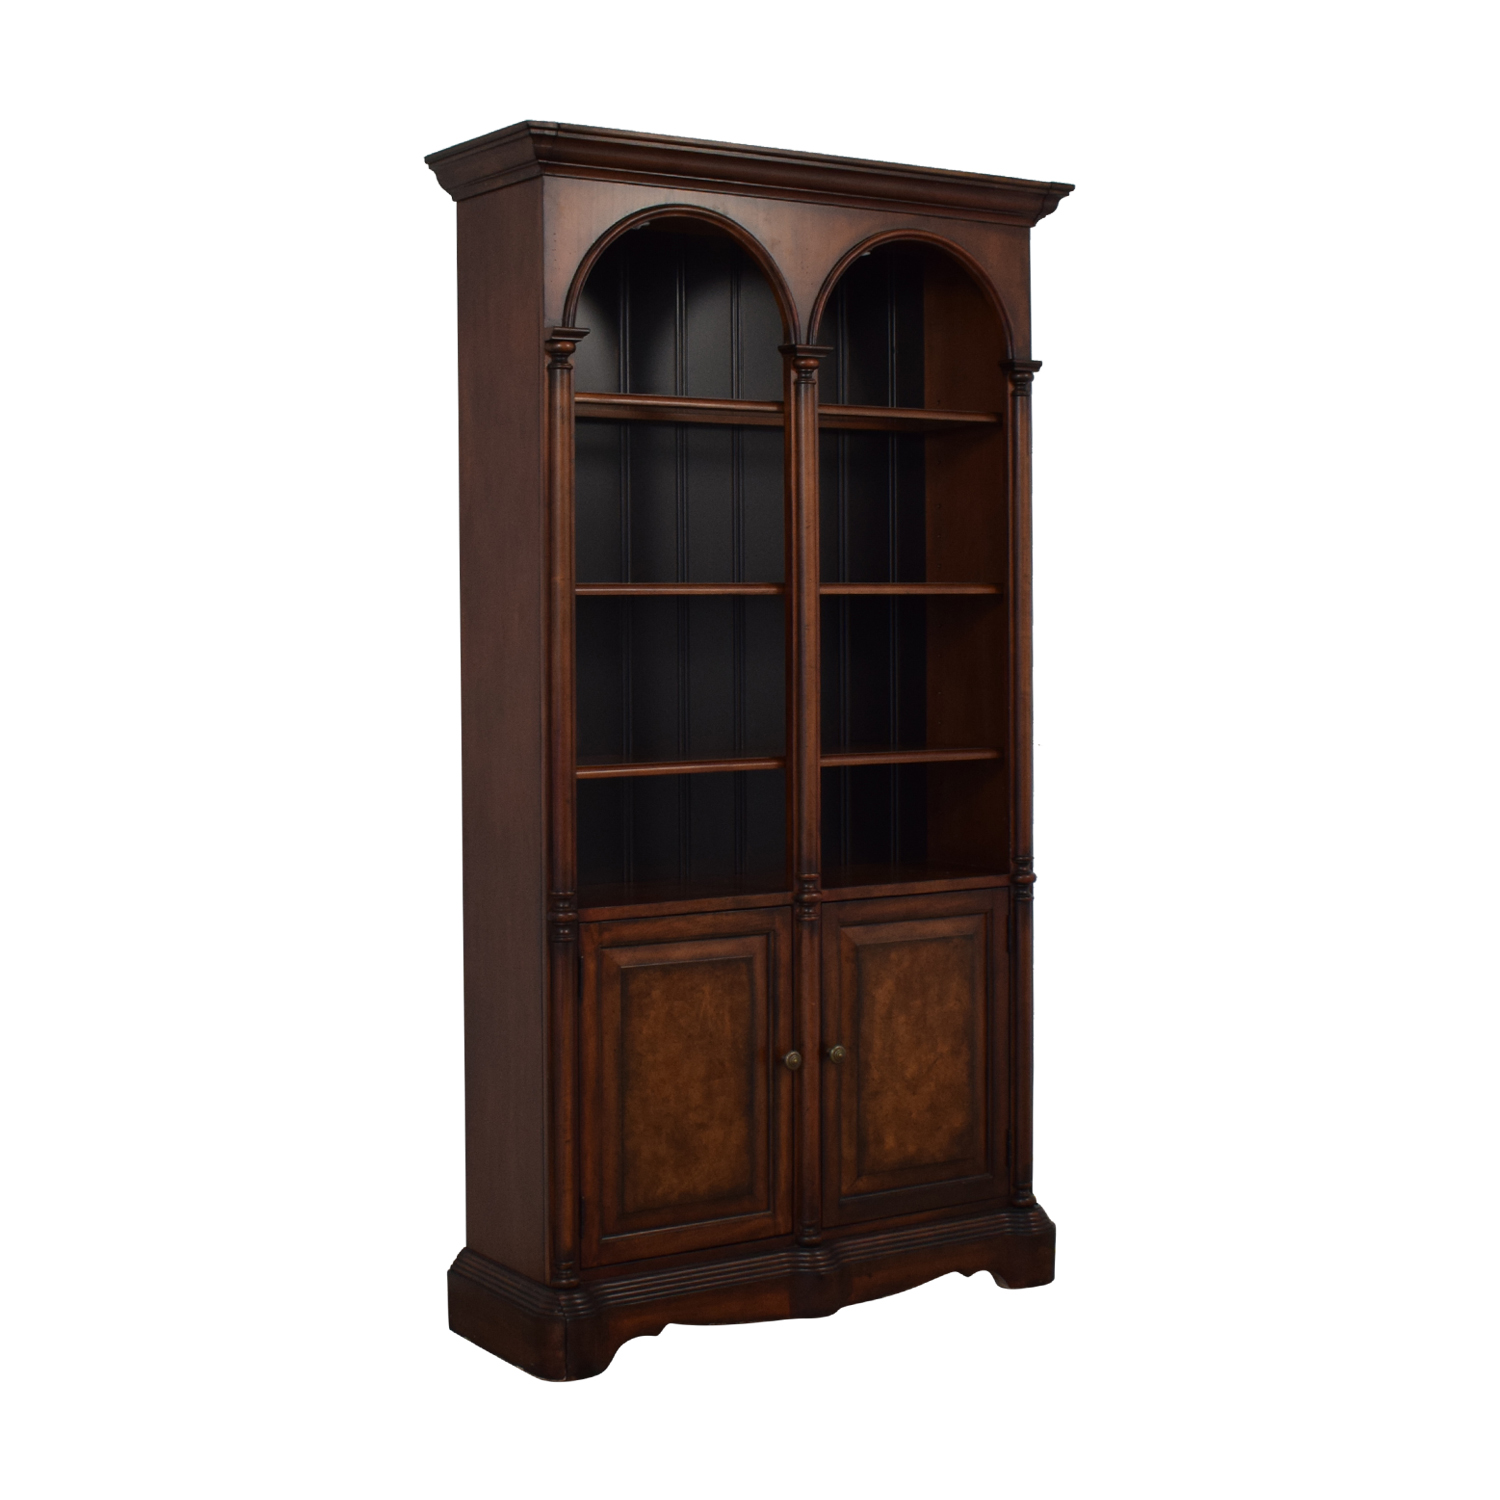 Hooker Furniture Hooker Furniture Bunching Bookcase for sale